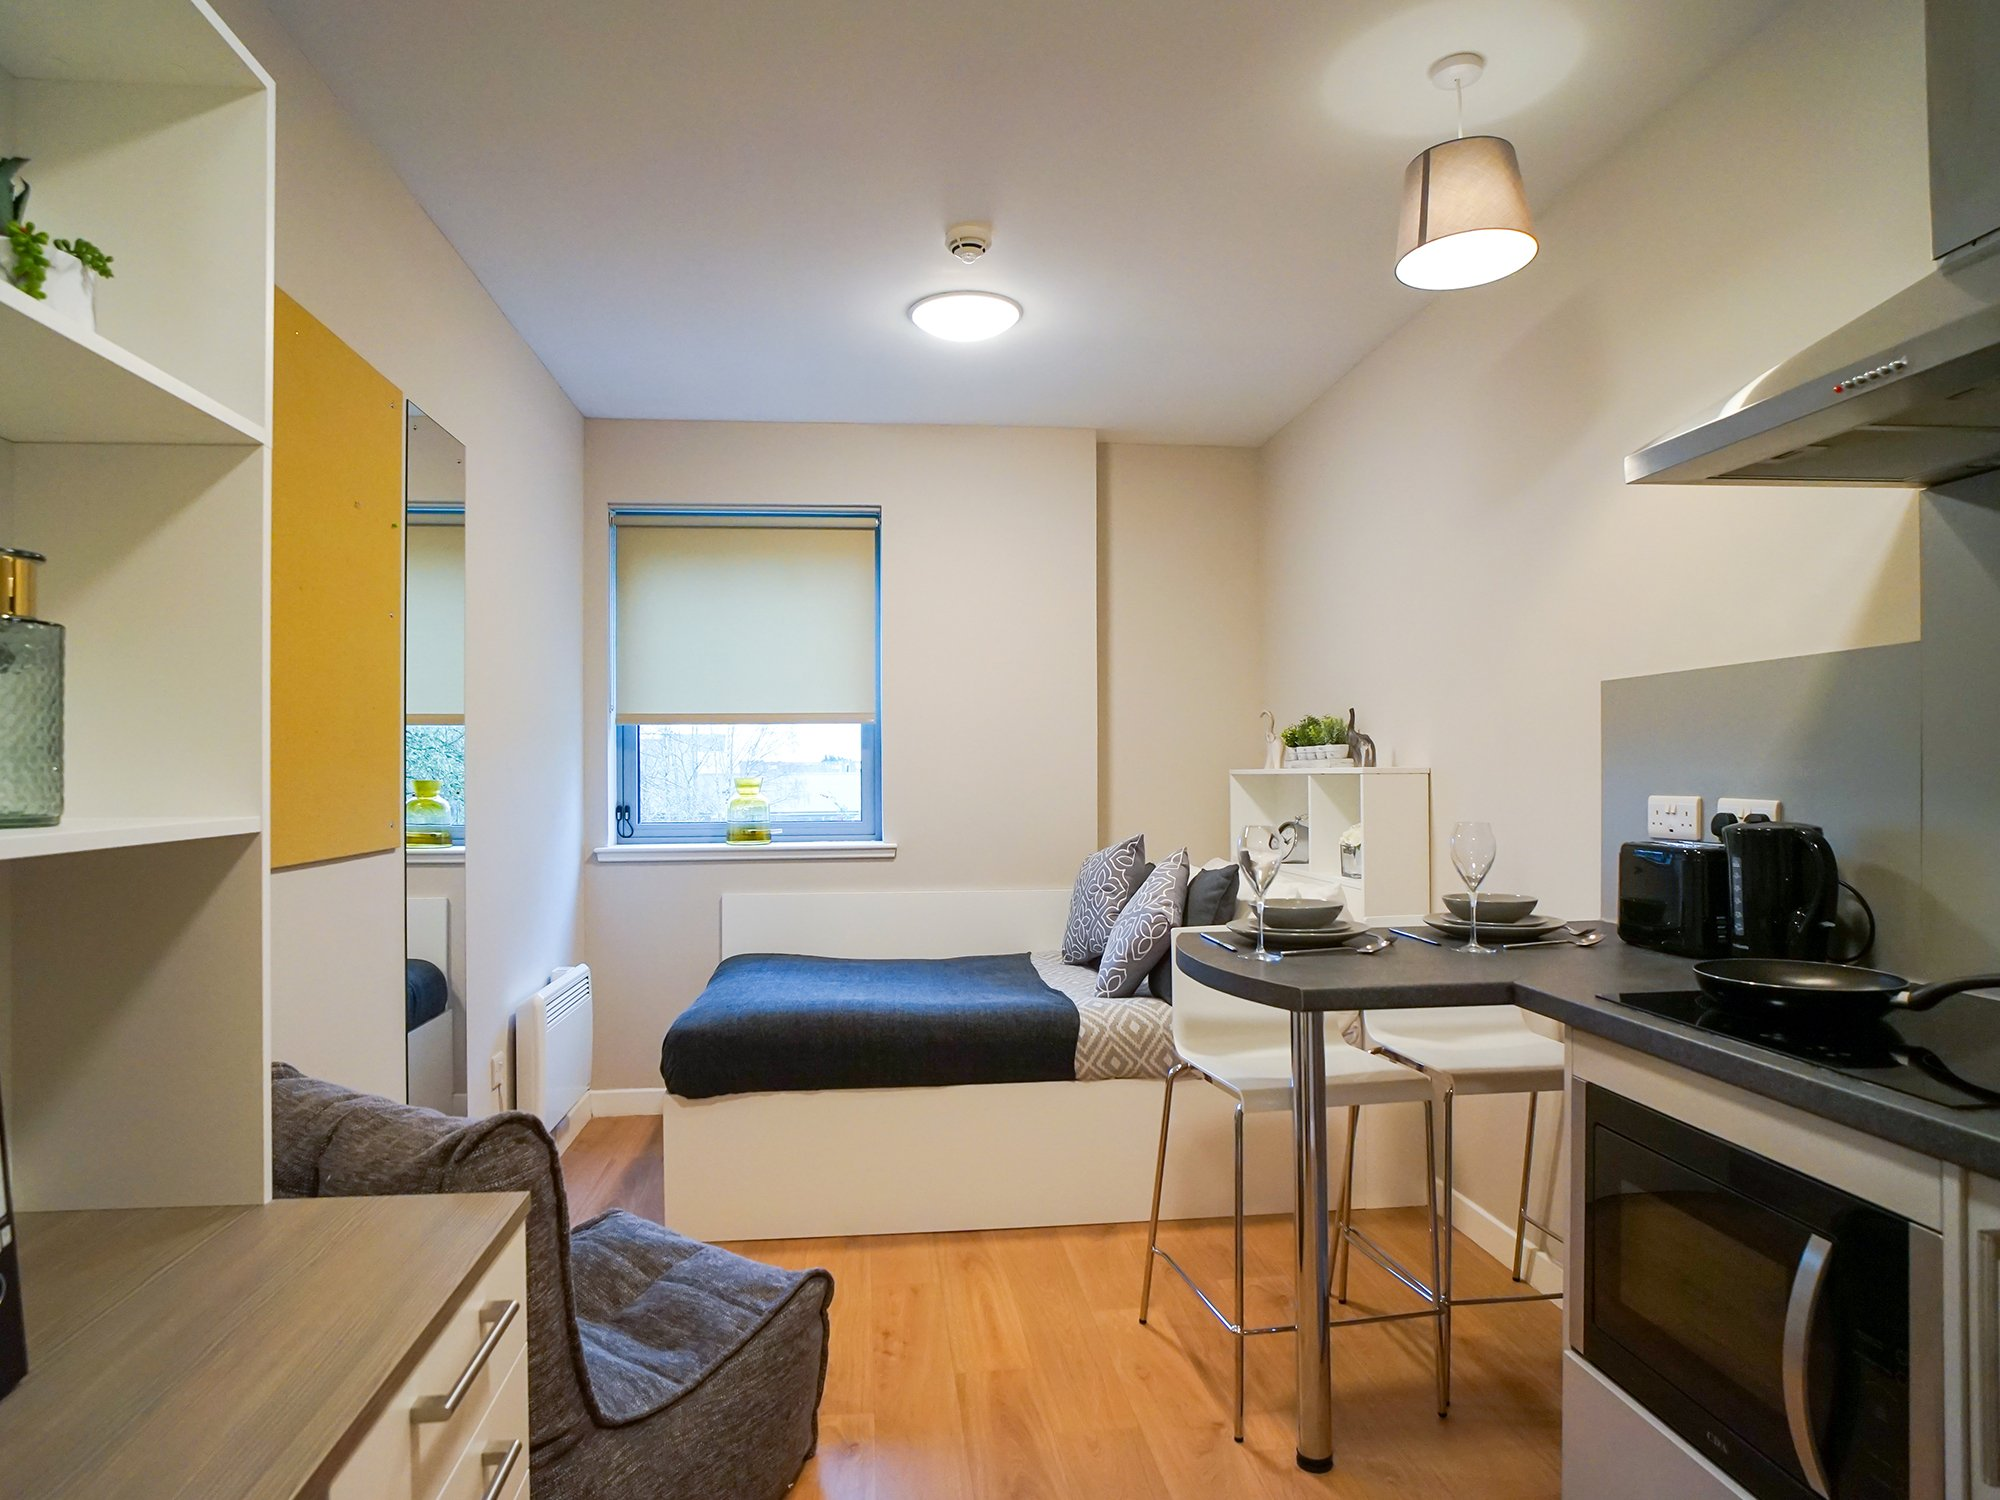 classic studio centro house student accommodation Stirling